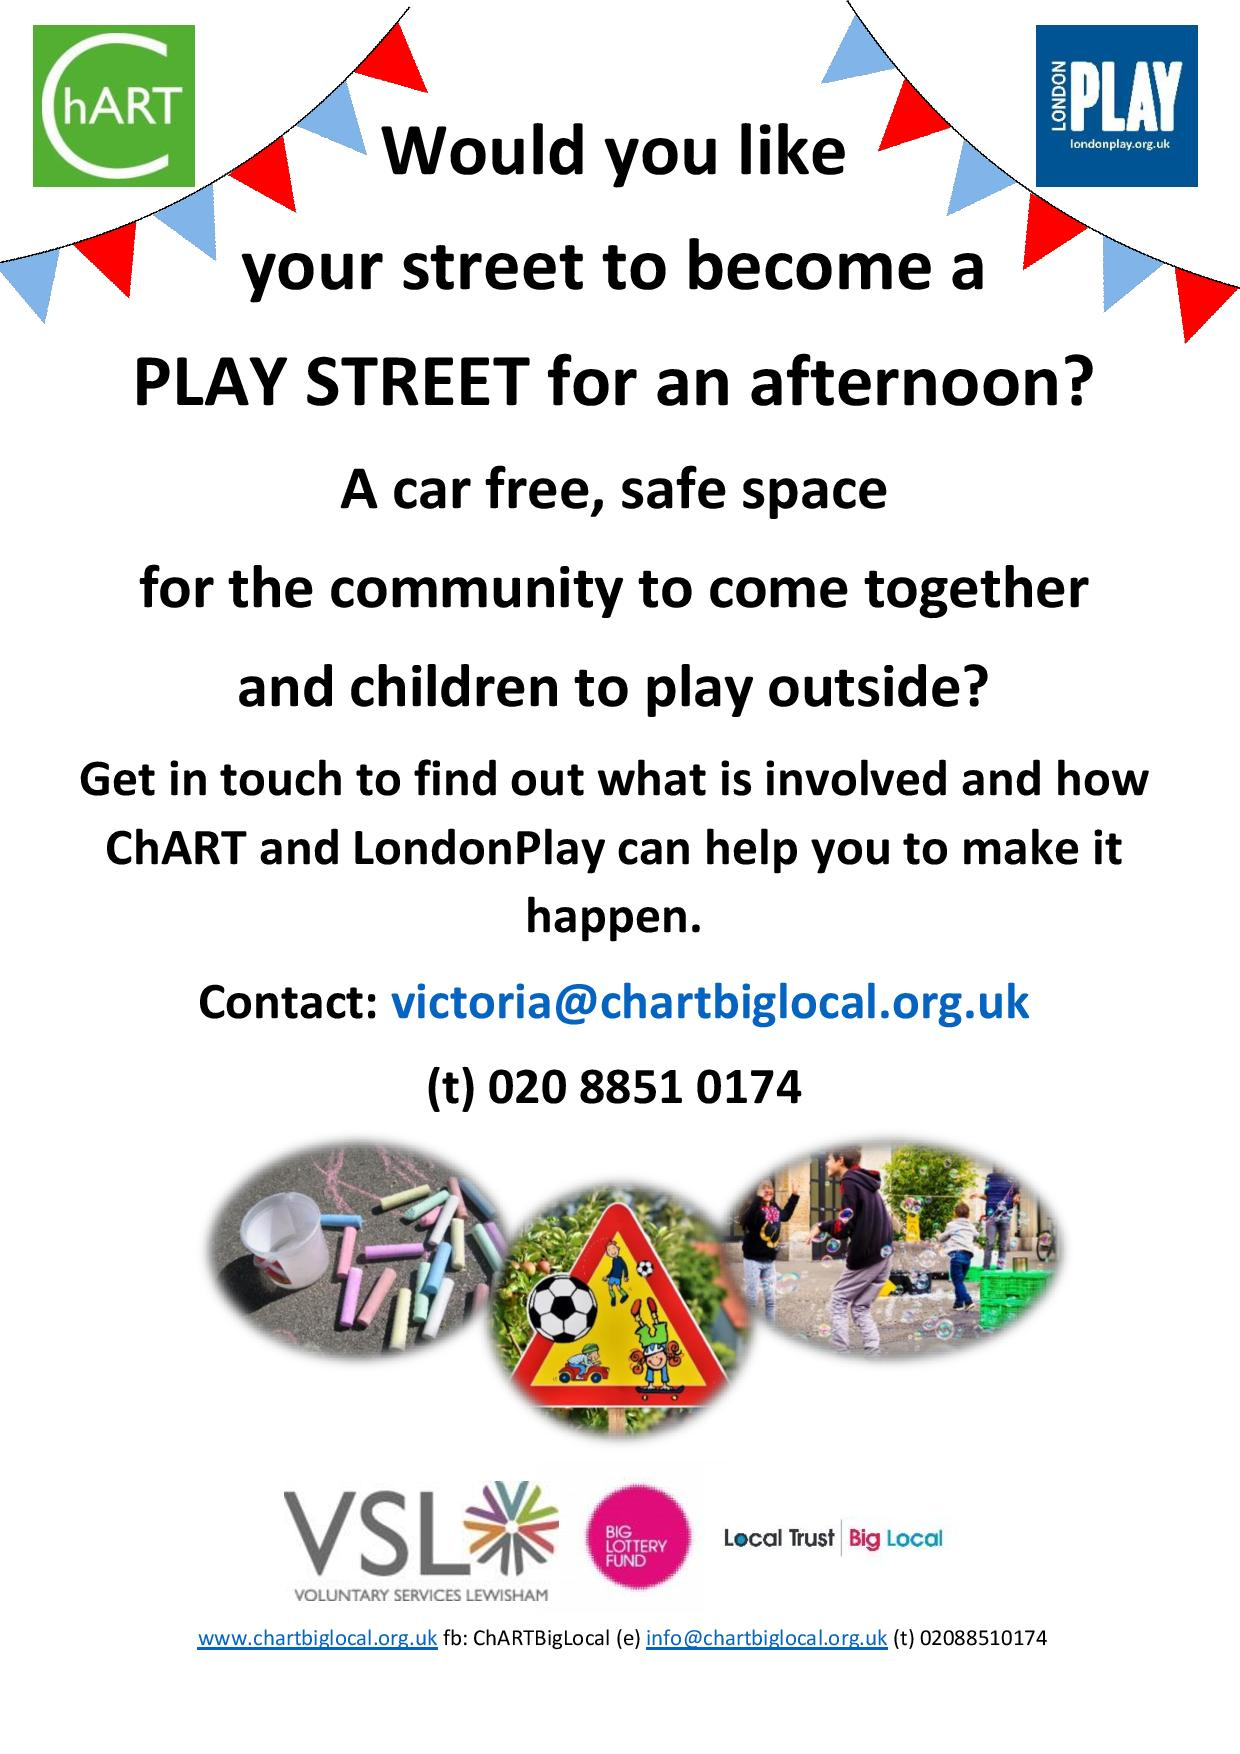 would you like a play street flyer. For help creating a car free, safe space for the community to come together and children to play outside contact victoria@chartbiglocal.org.uk telephone: 02088510174